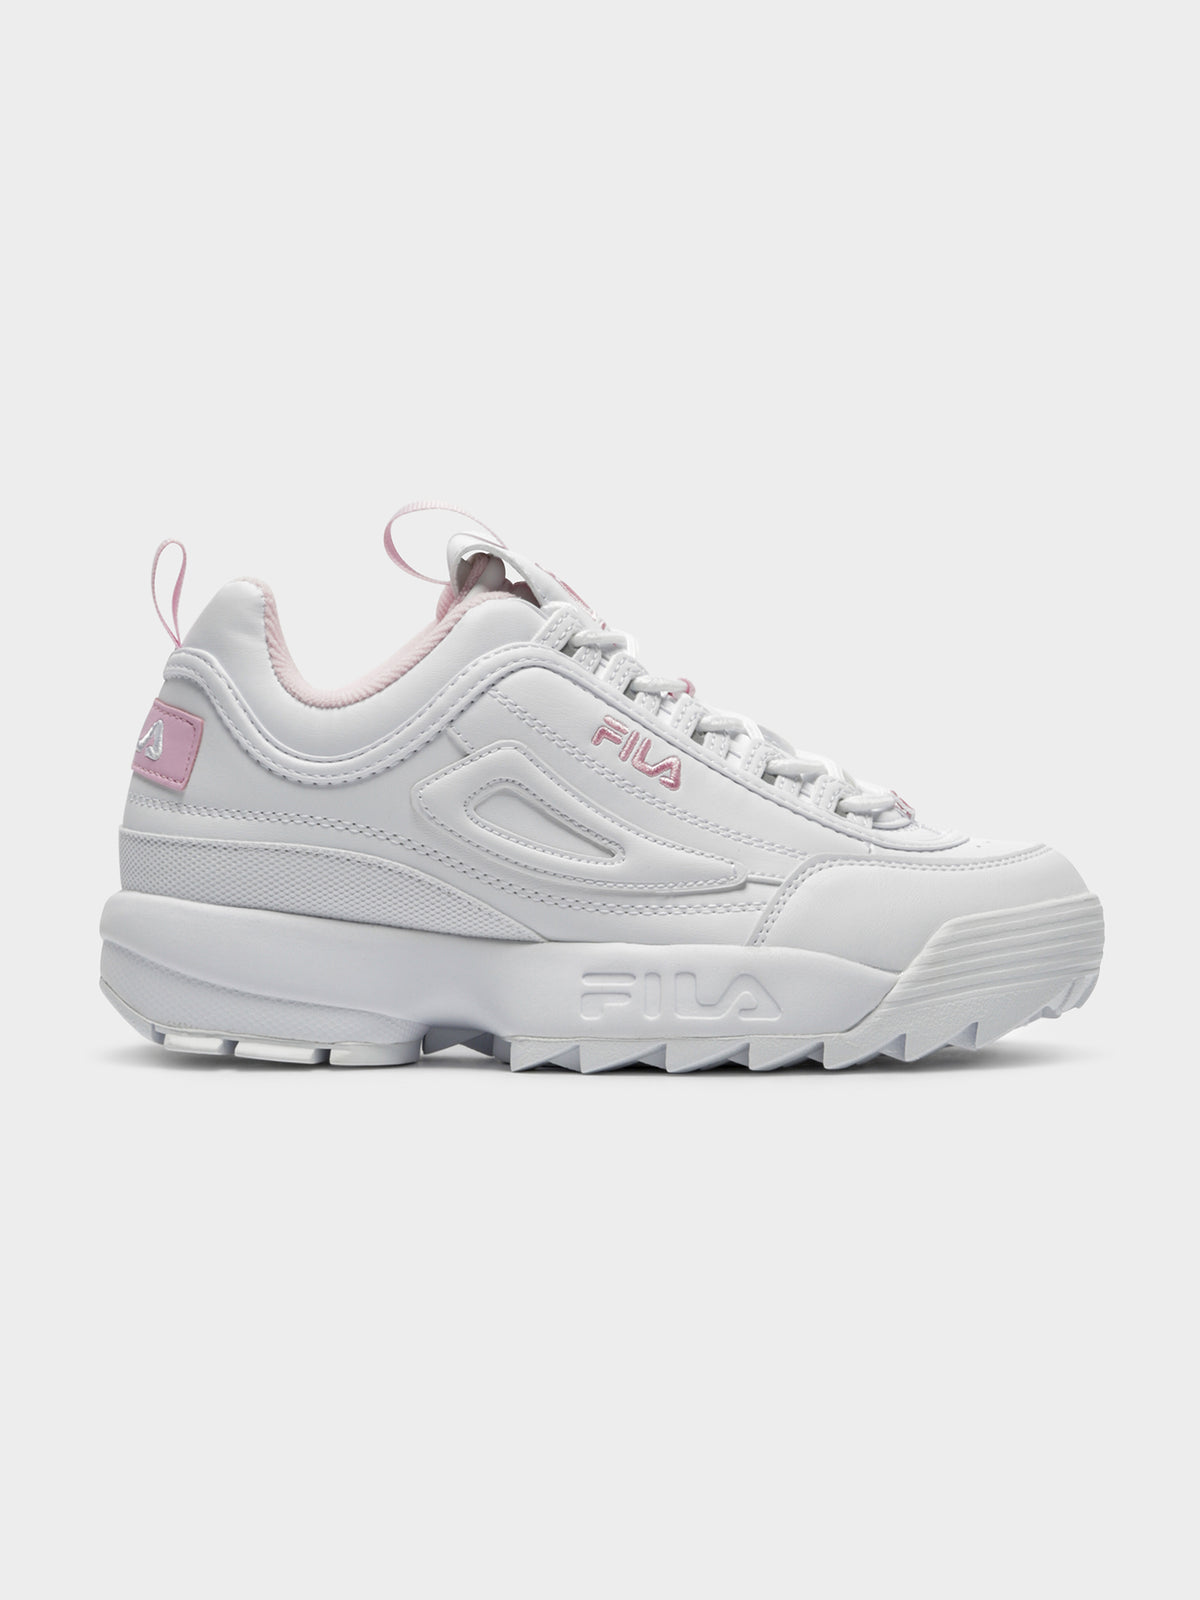 Womens Disruptor II Sneakers in White & Pink